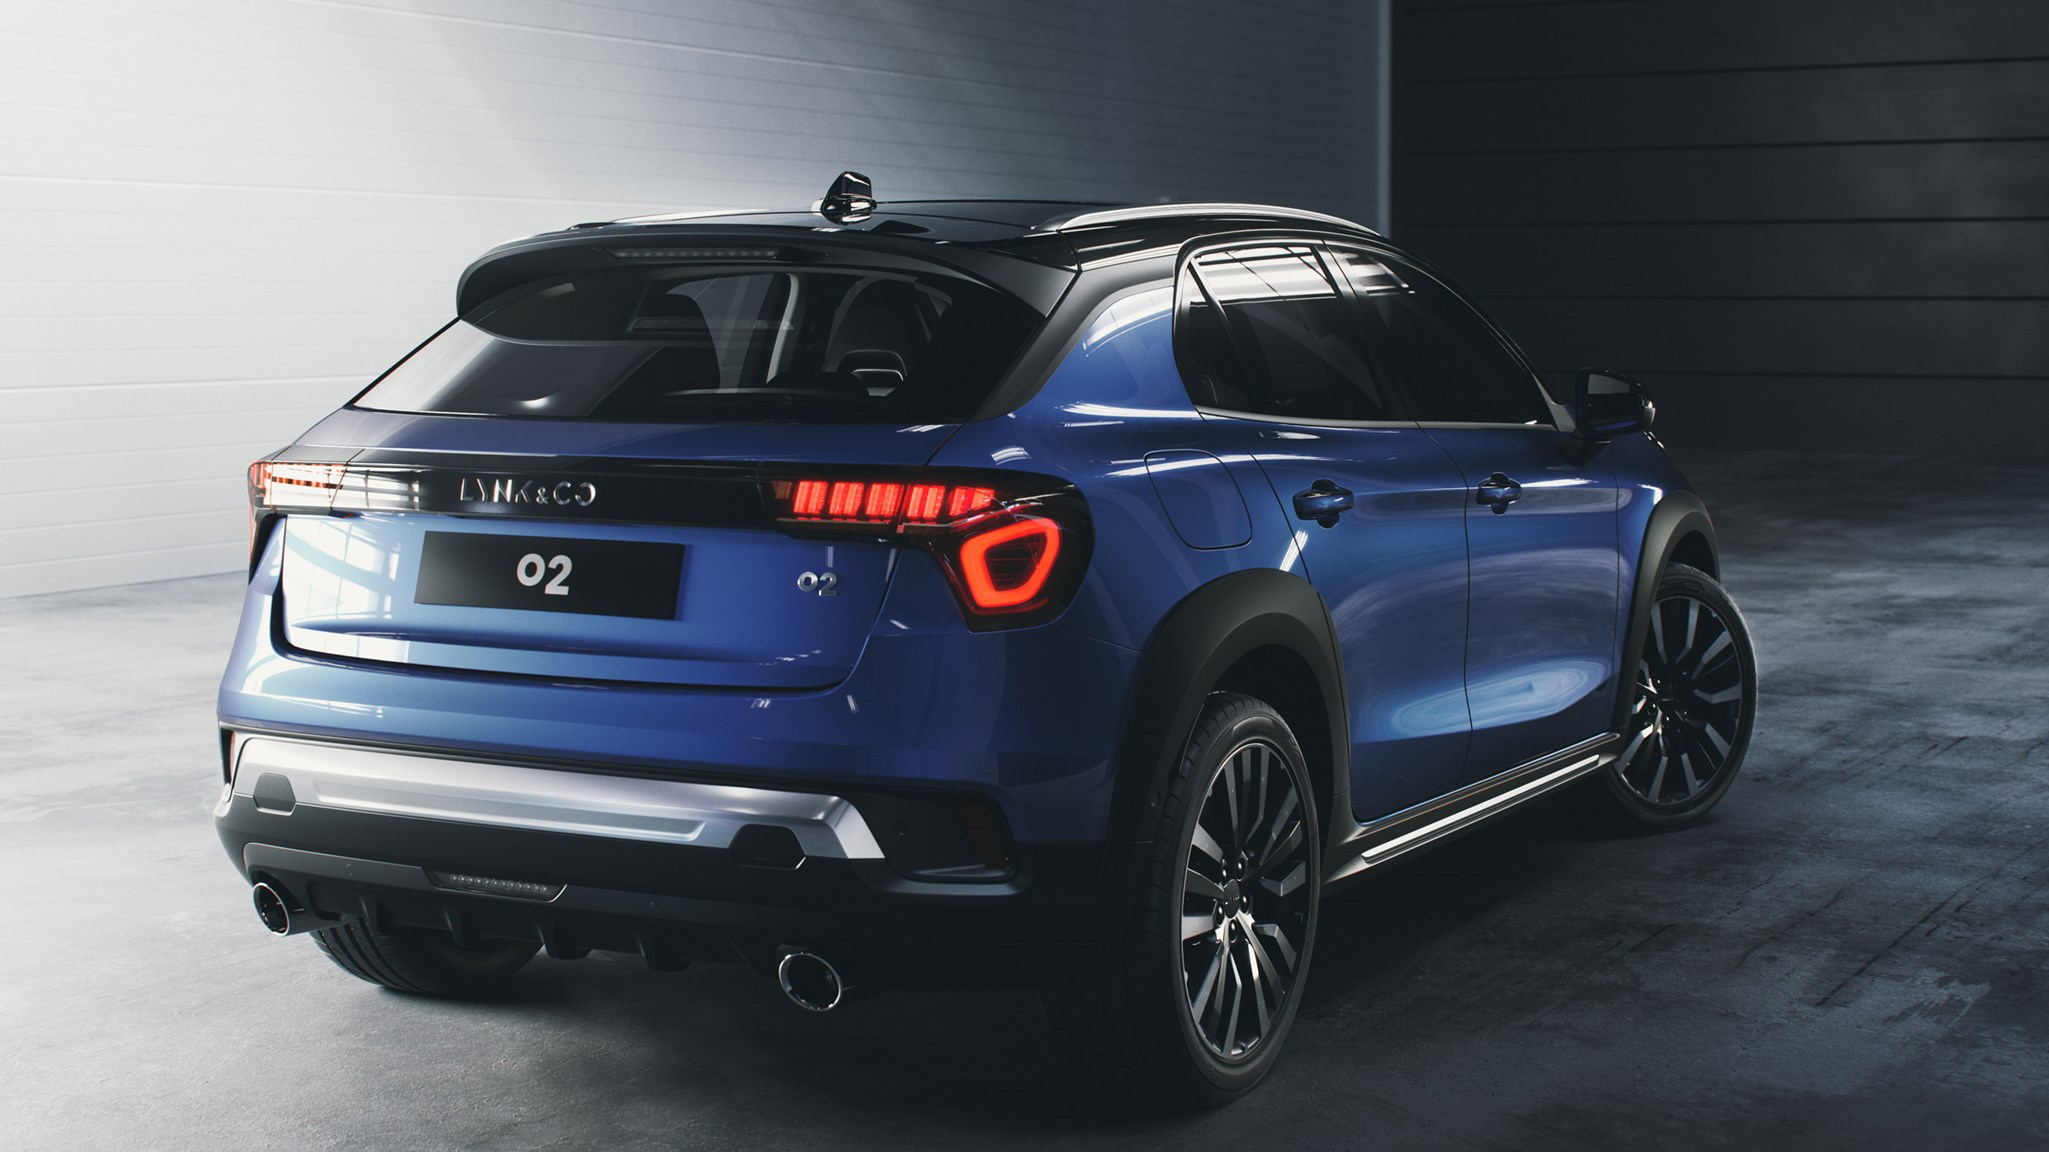 Lynk Amp Co 02 Geely S Other Marque Reveals New Suv Car